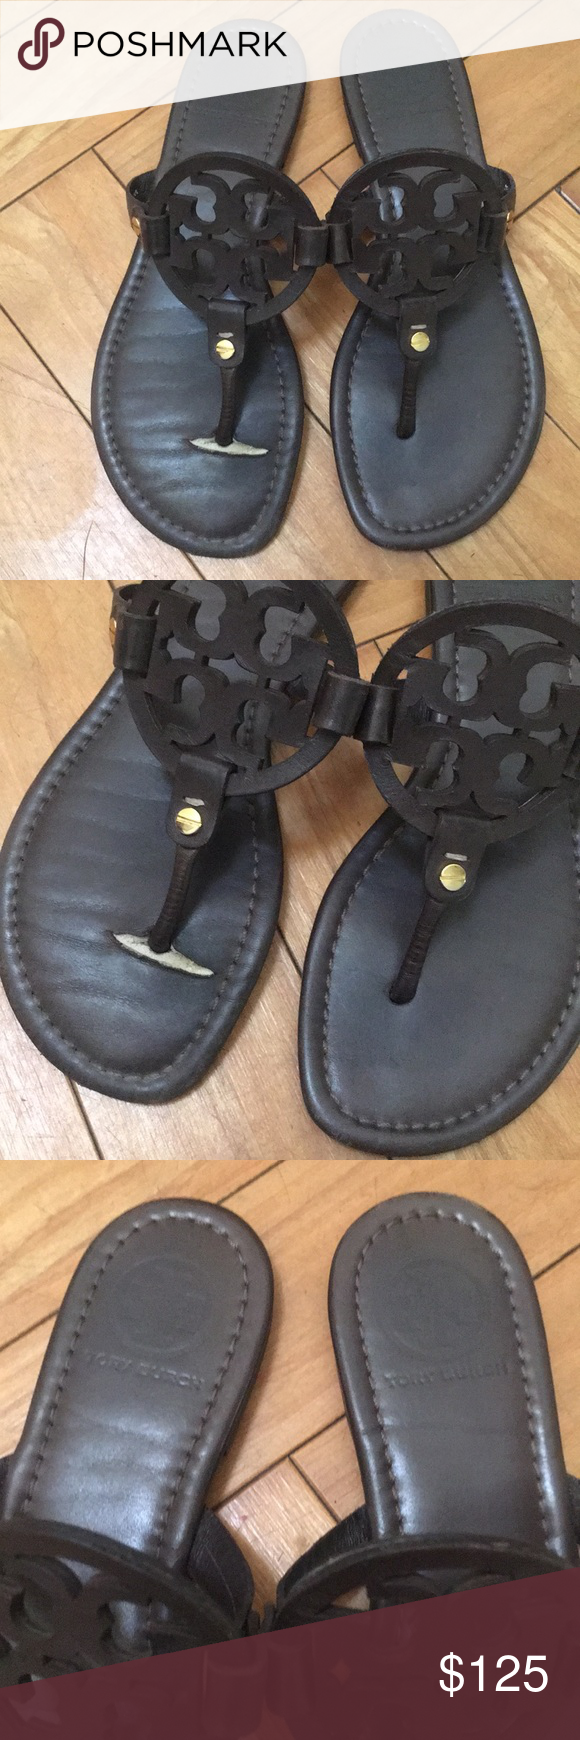 85bda3d29 Tory Burch Chocolate Brown Miller Sandals size 7 Tory Burch Miller s in a  size 7 M